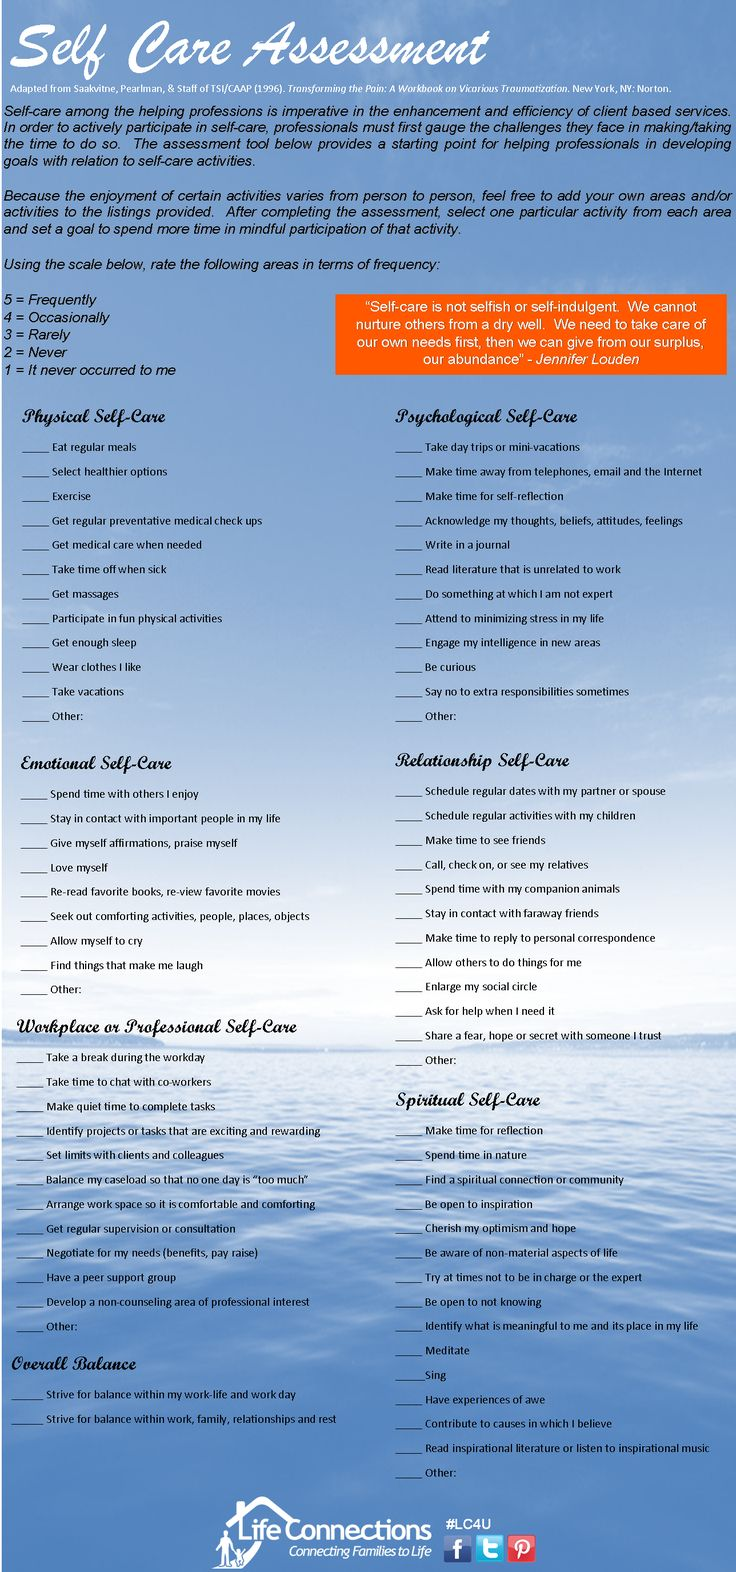 To lead a whole and healthy life, even if you are not a care-giver. This self care assessment speaks to teachers and parents as well as anyone seeking balance in their life.